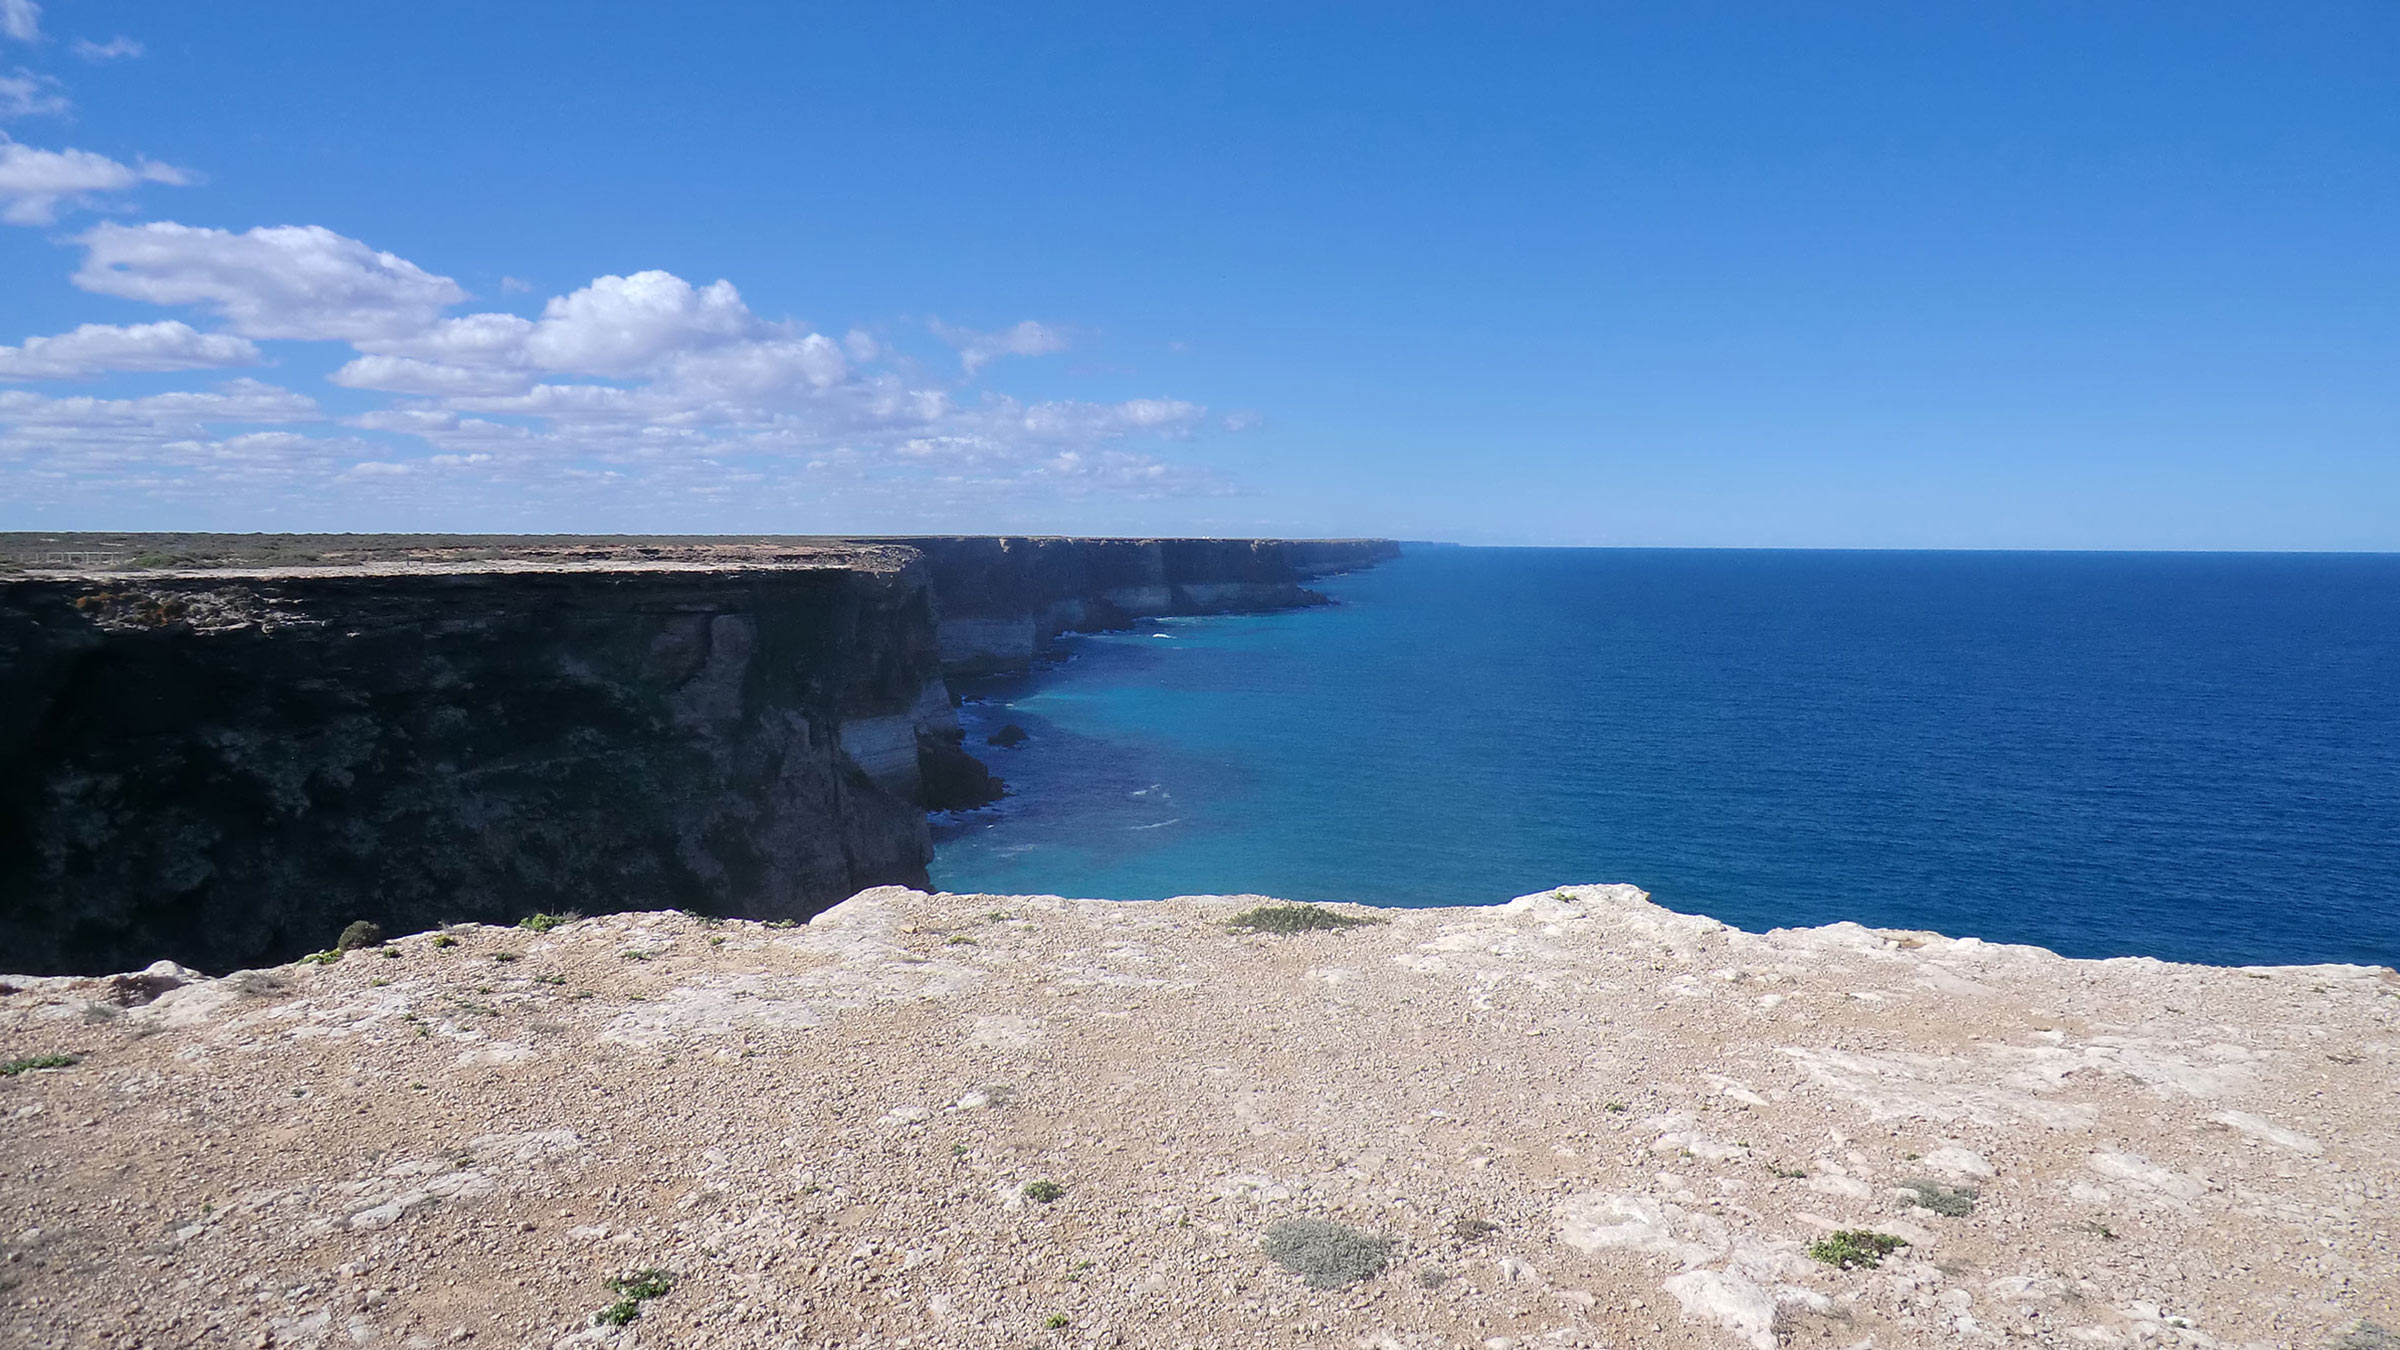 Australia's cliffs meet the ocean